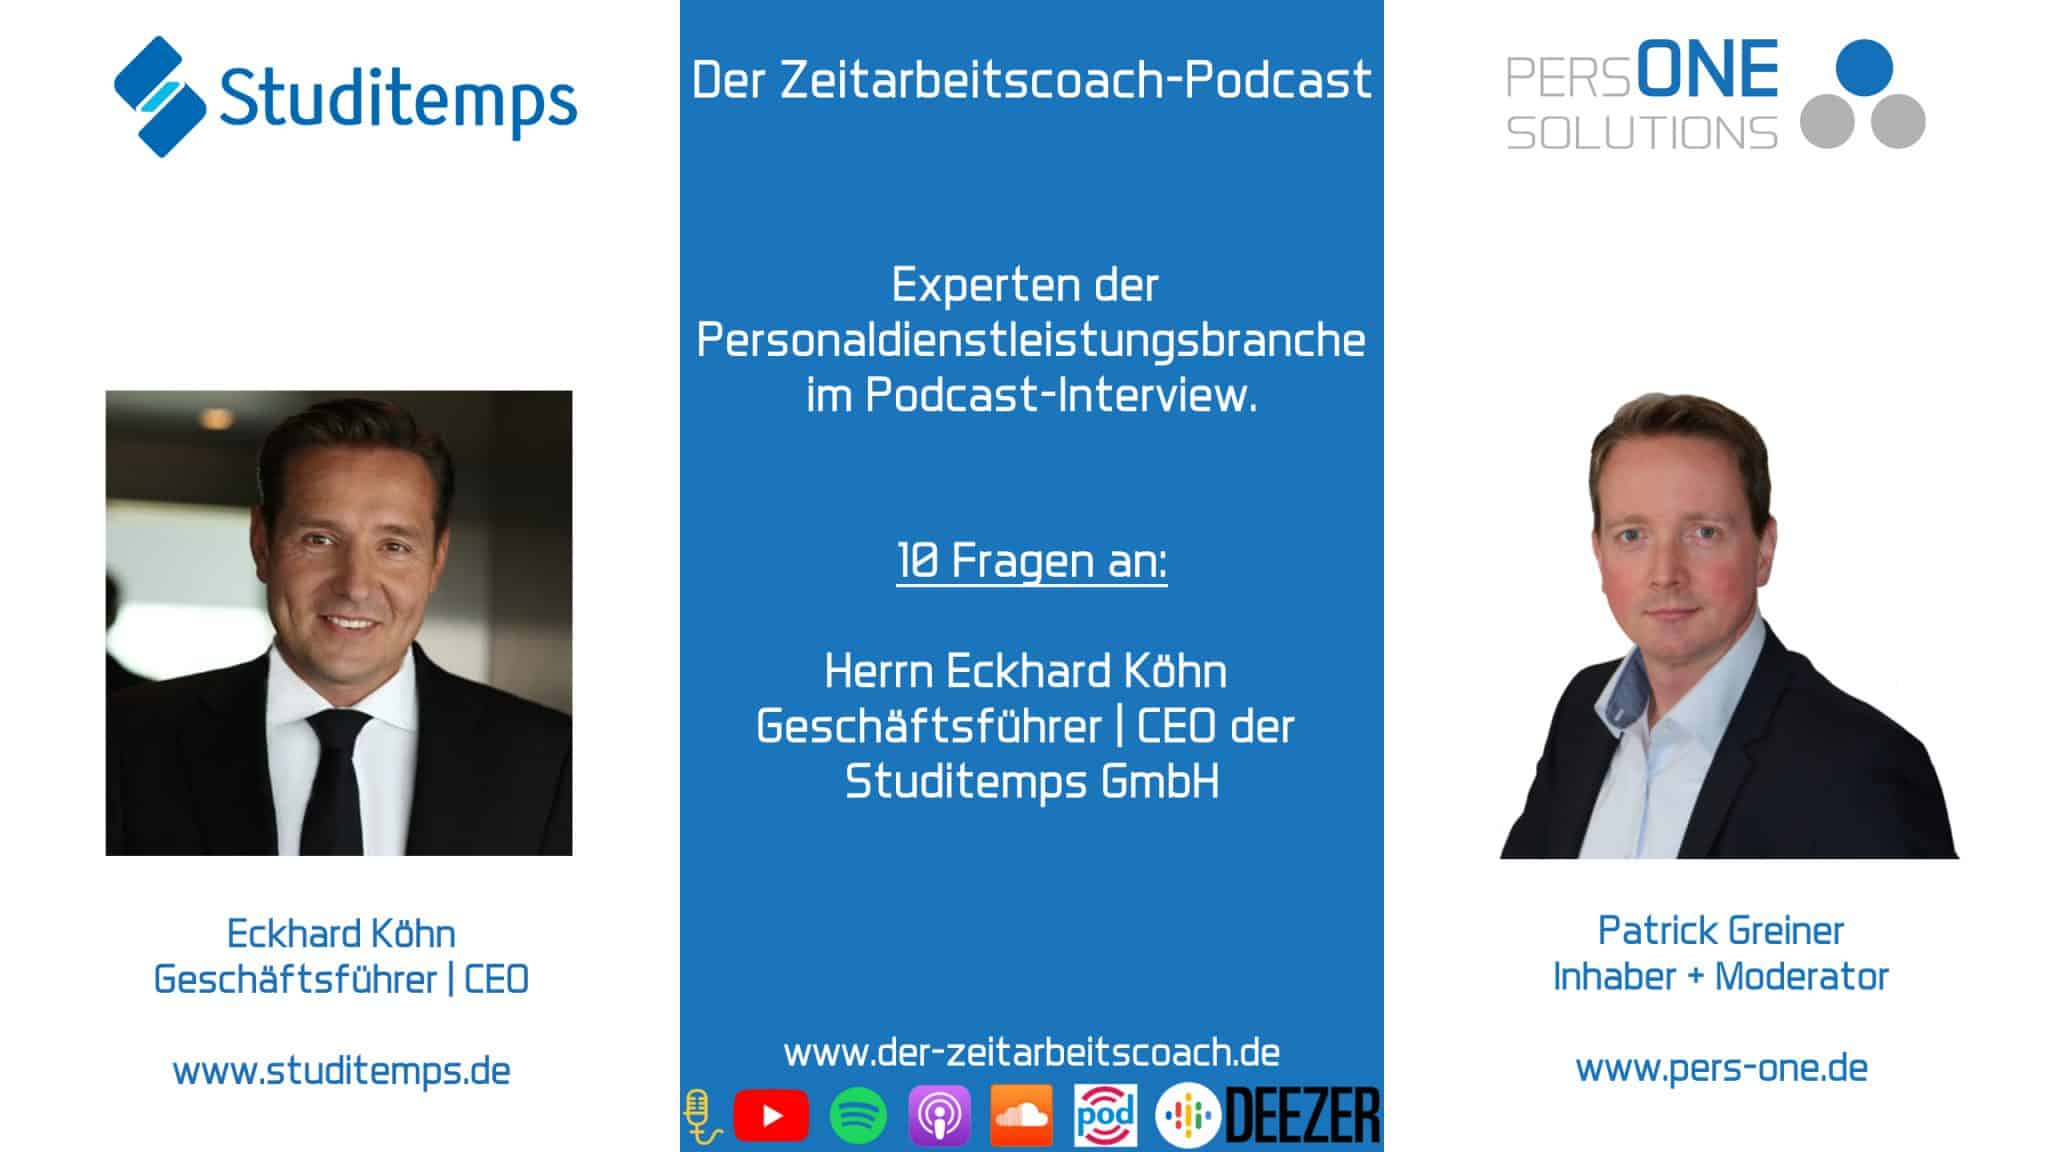 Köhn, Eckhard_Studitemps_Podcast YT Grafik-Experten-Interview_Zeitarbeitscoach-Podcast